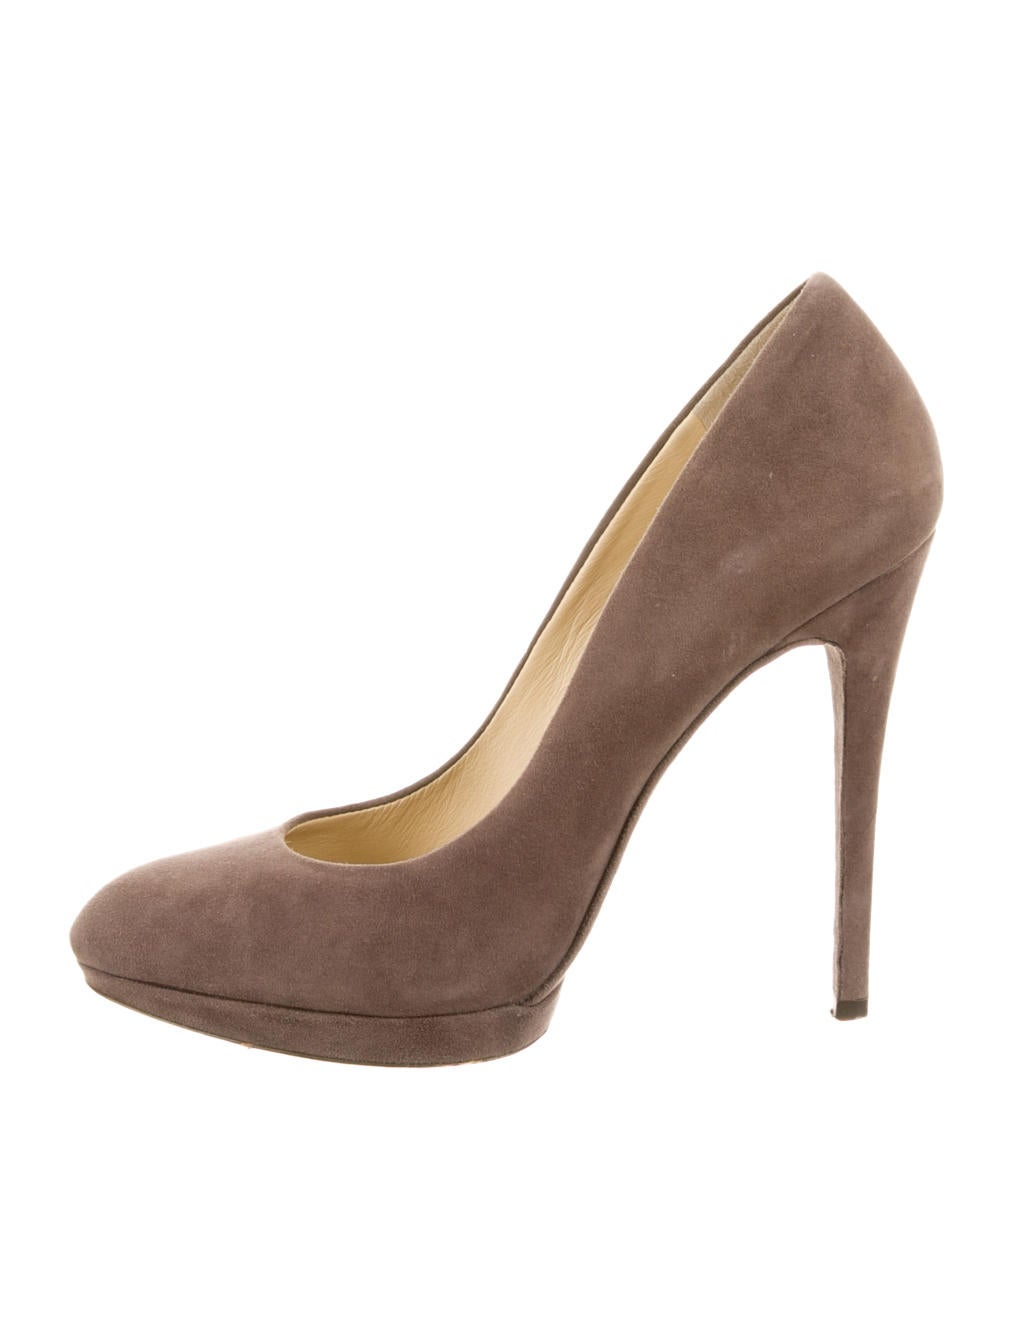 B Brian Atwood Pumps - Shoes